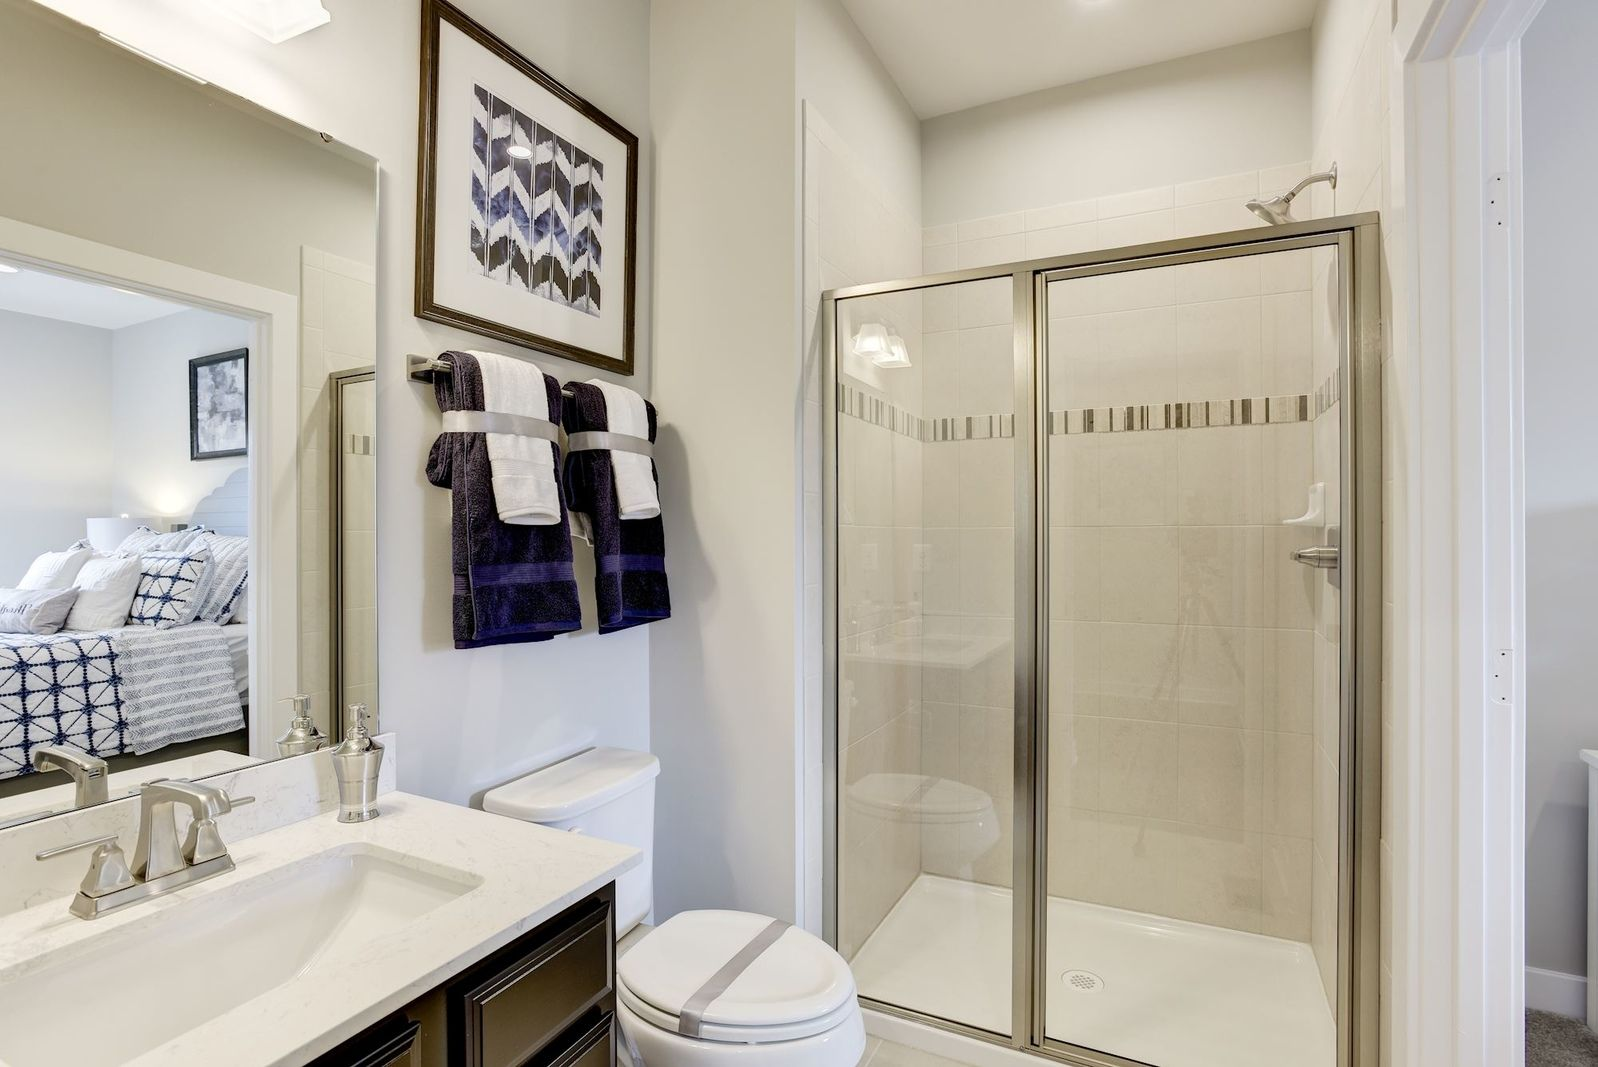 Bathroom featured in the Normandy By Ryan Homes in Washington, MD